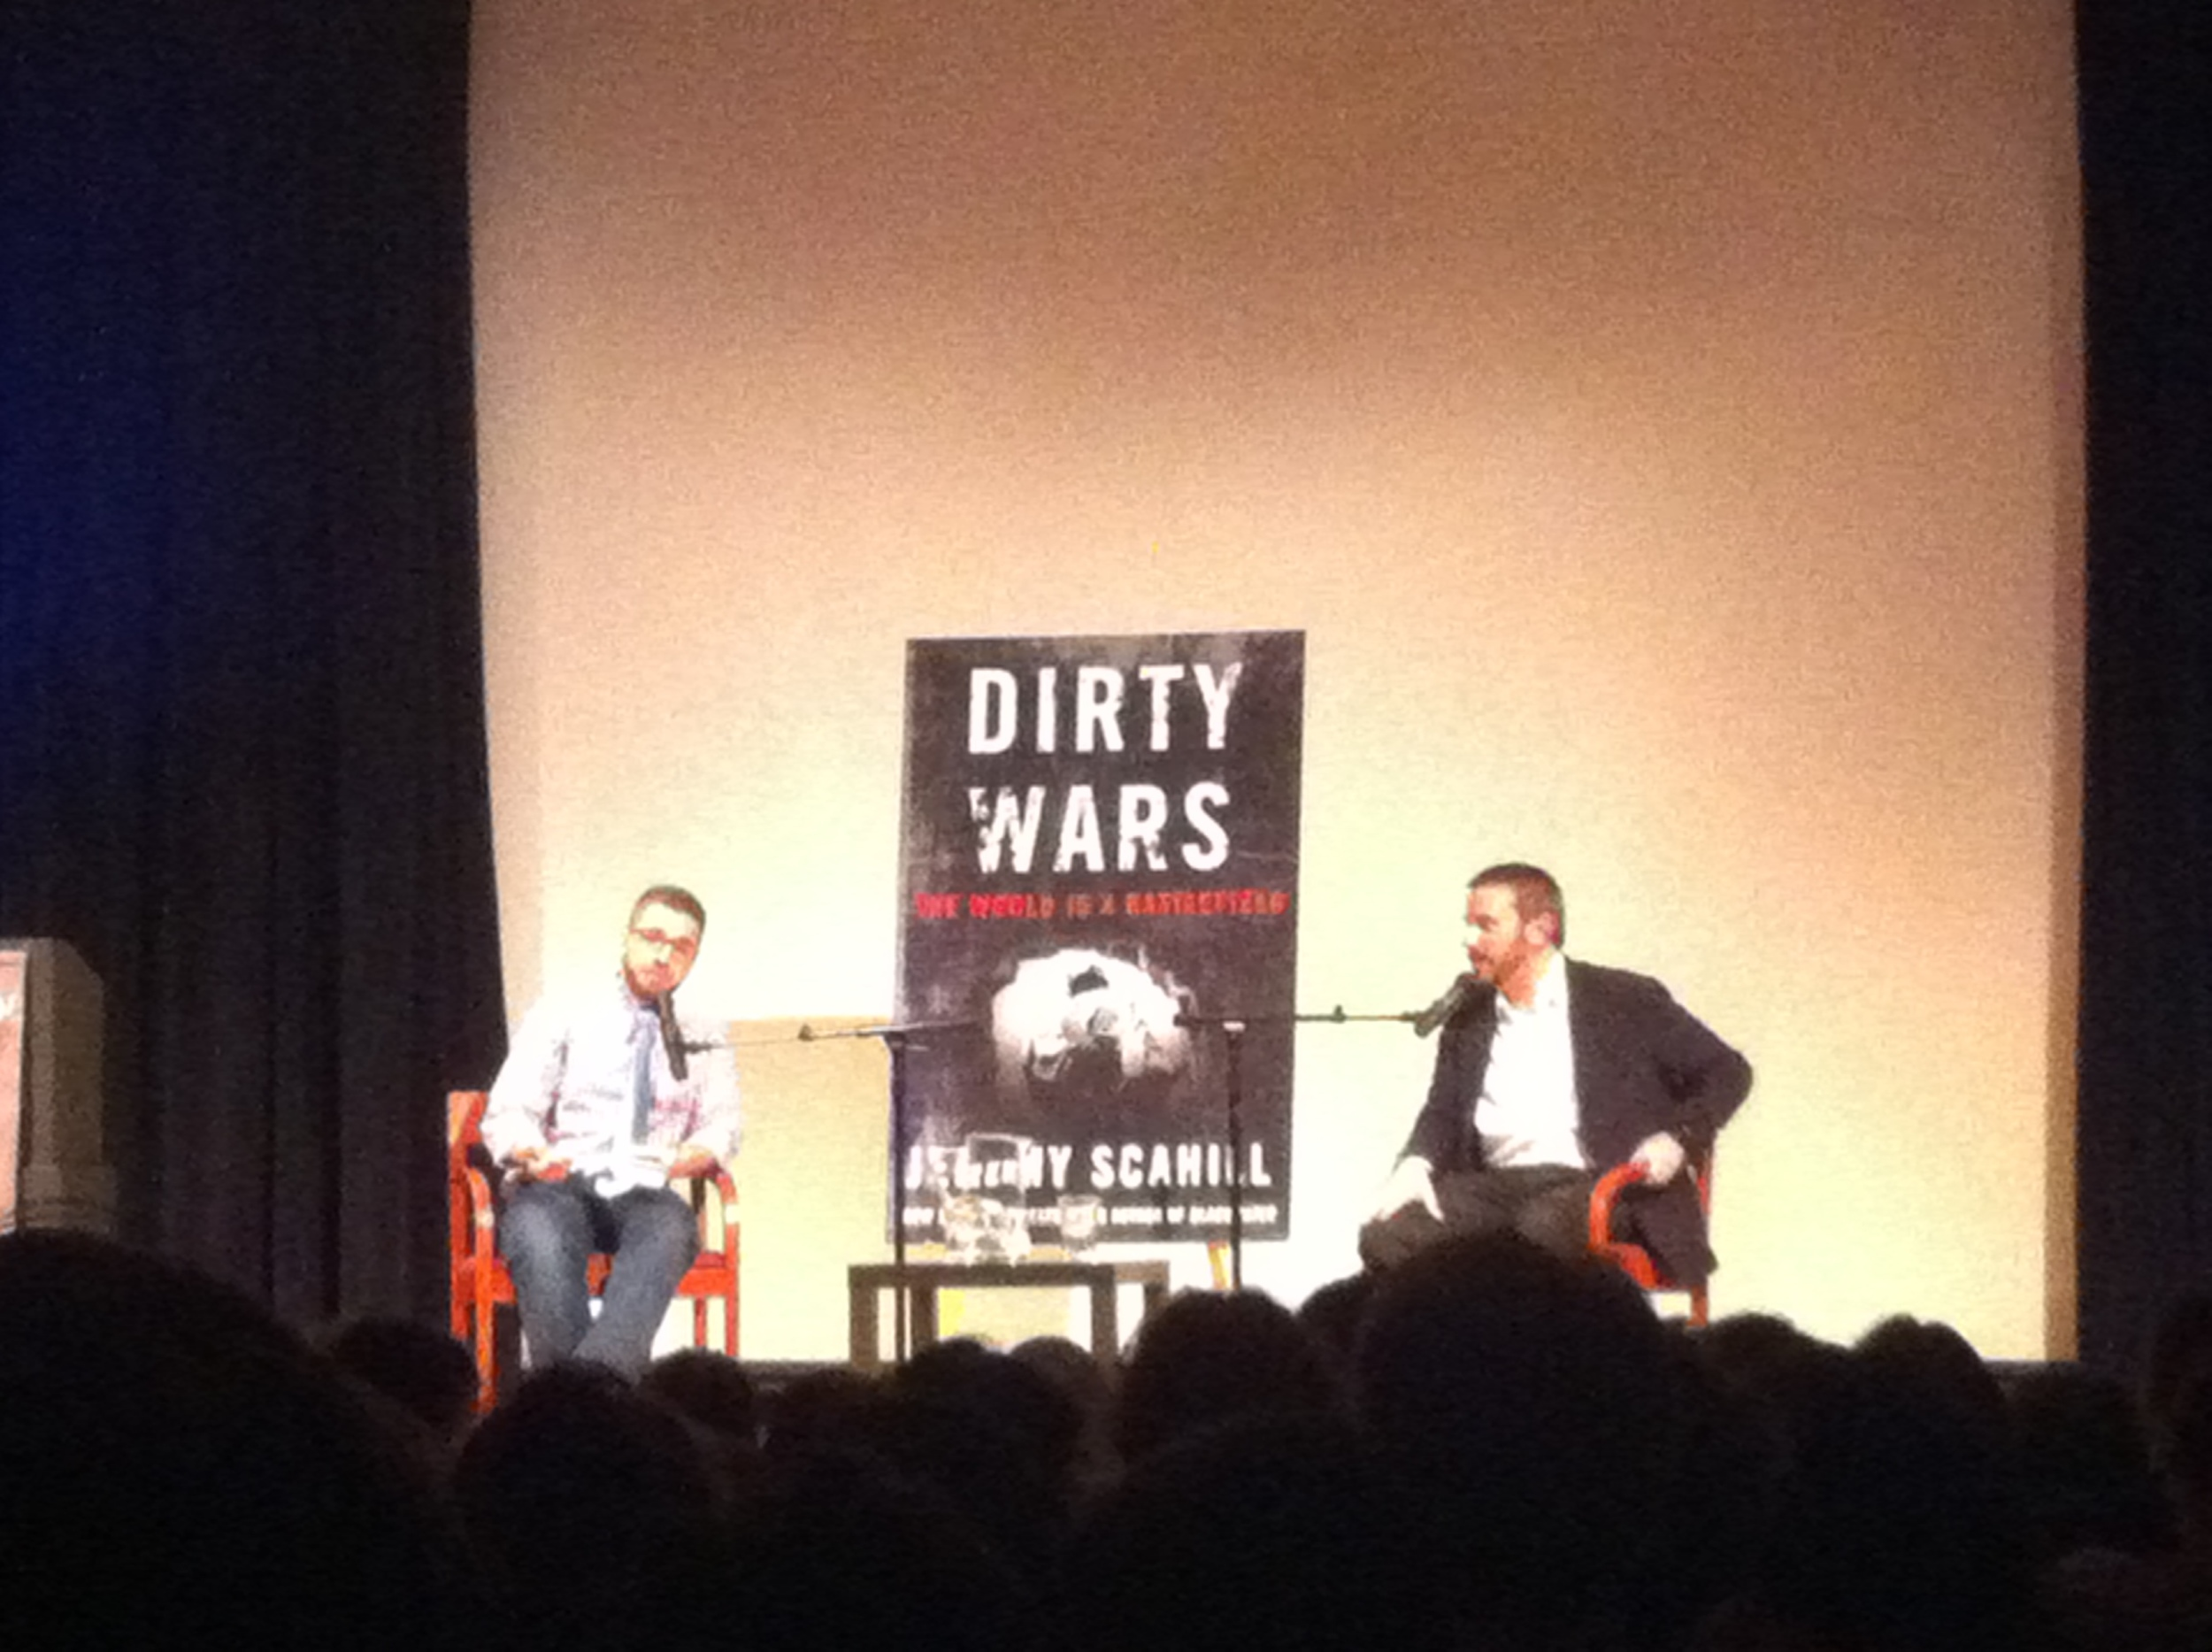 Jeremy Scahill and Spencer Ackerman.JPG